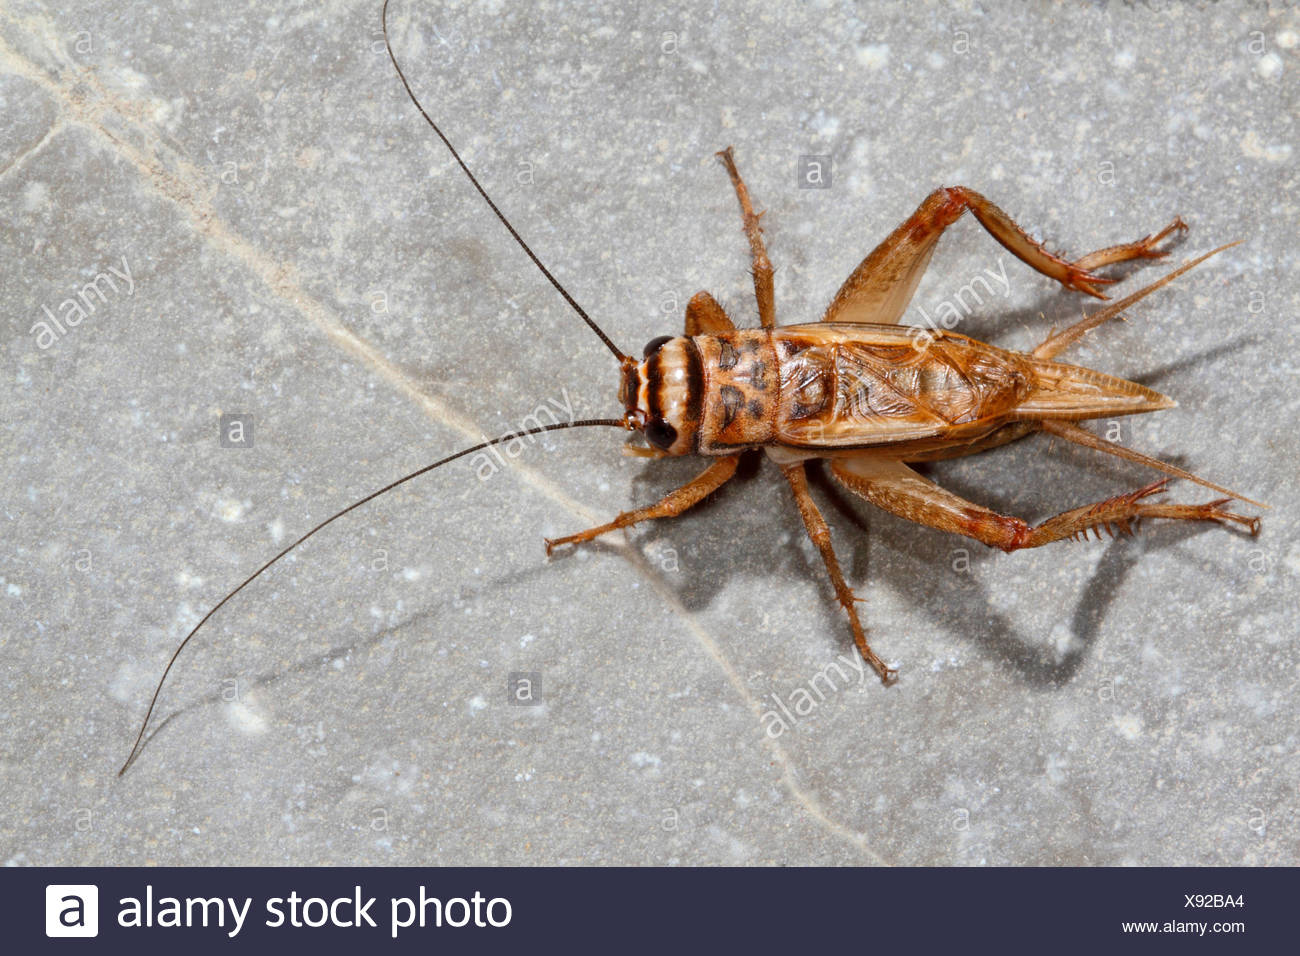 House cricket, Domestic cricket, Domestic gray cricket (Acheta domesticus, Acheta domestica, Gryllulus domesticus), sitting on the ground, Germany - Stock Image